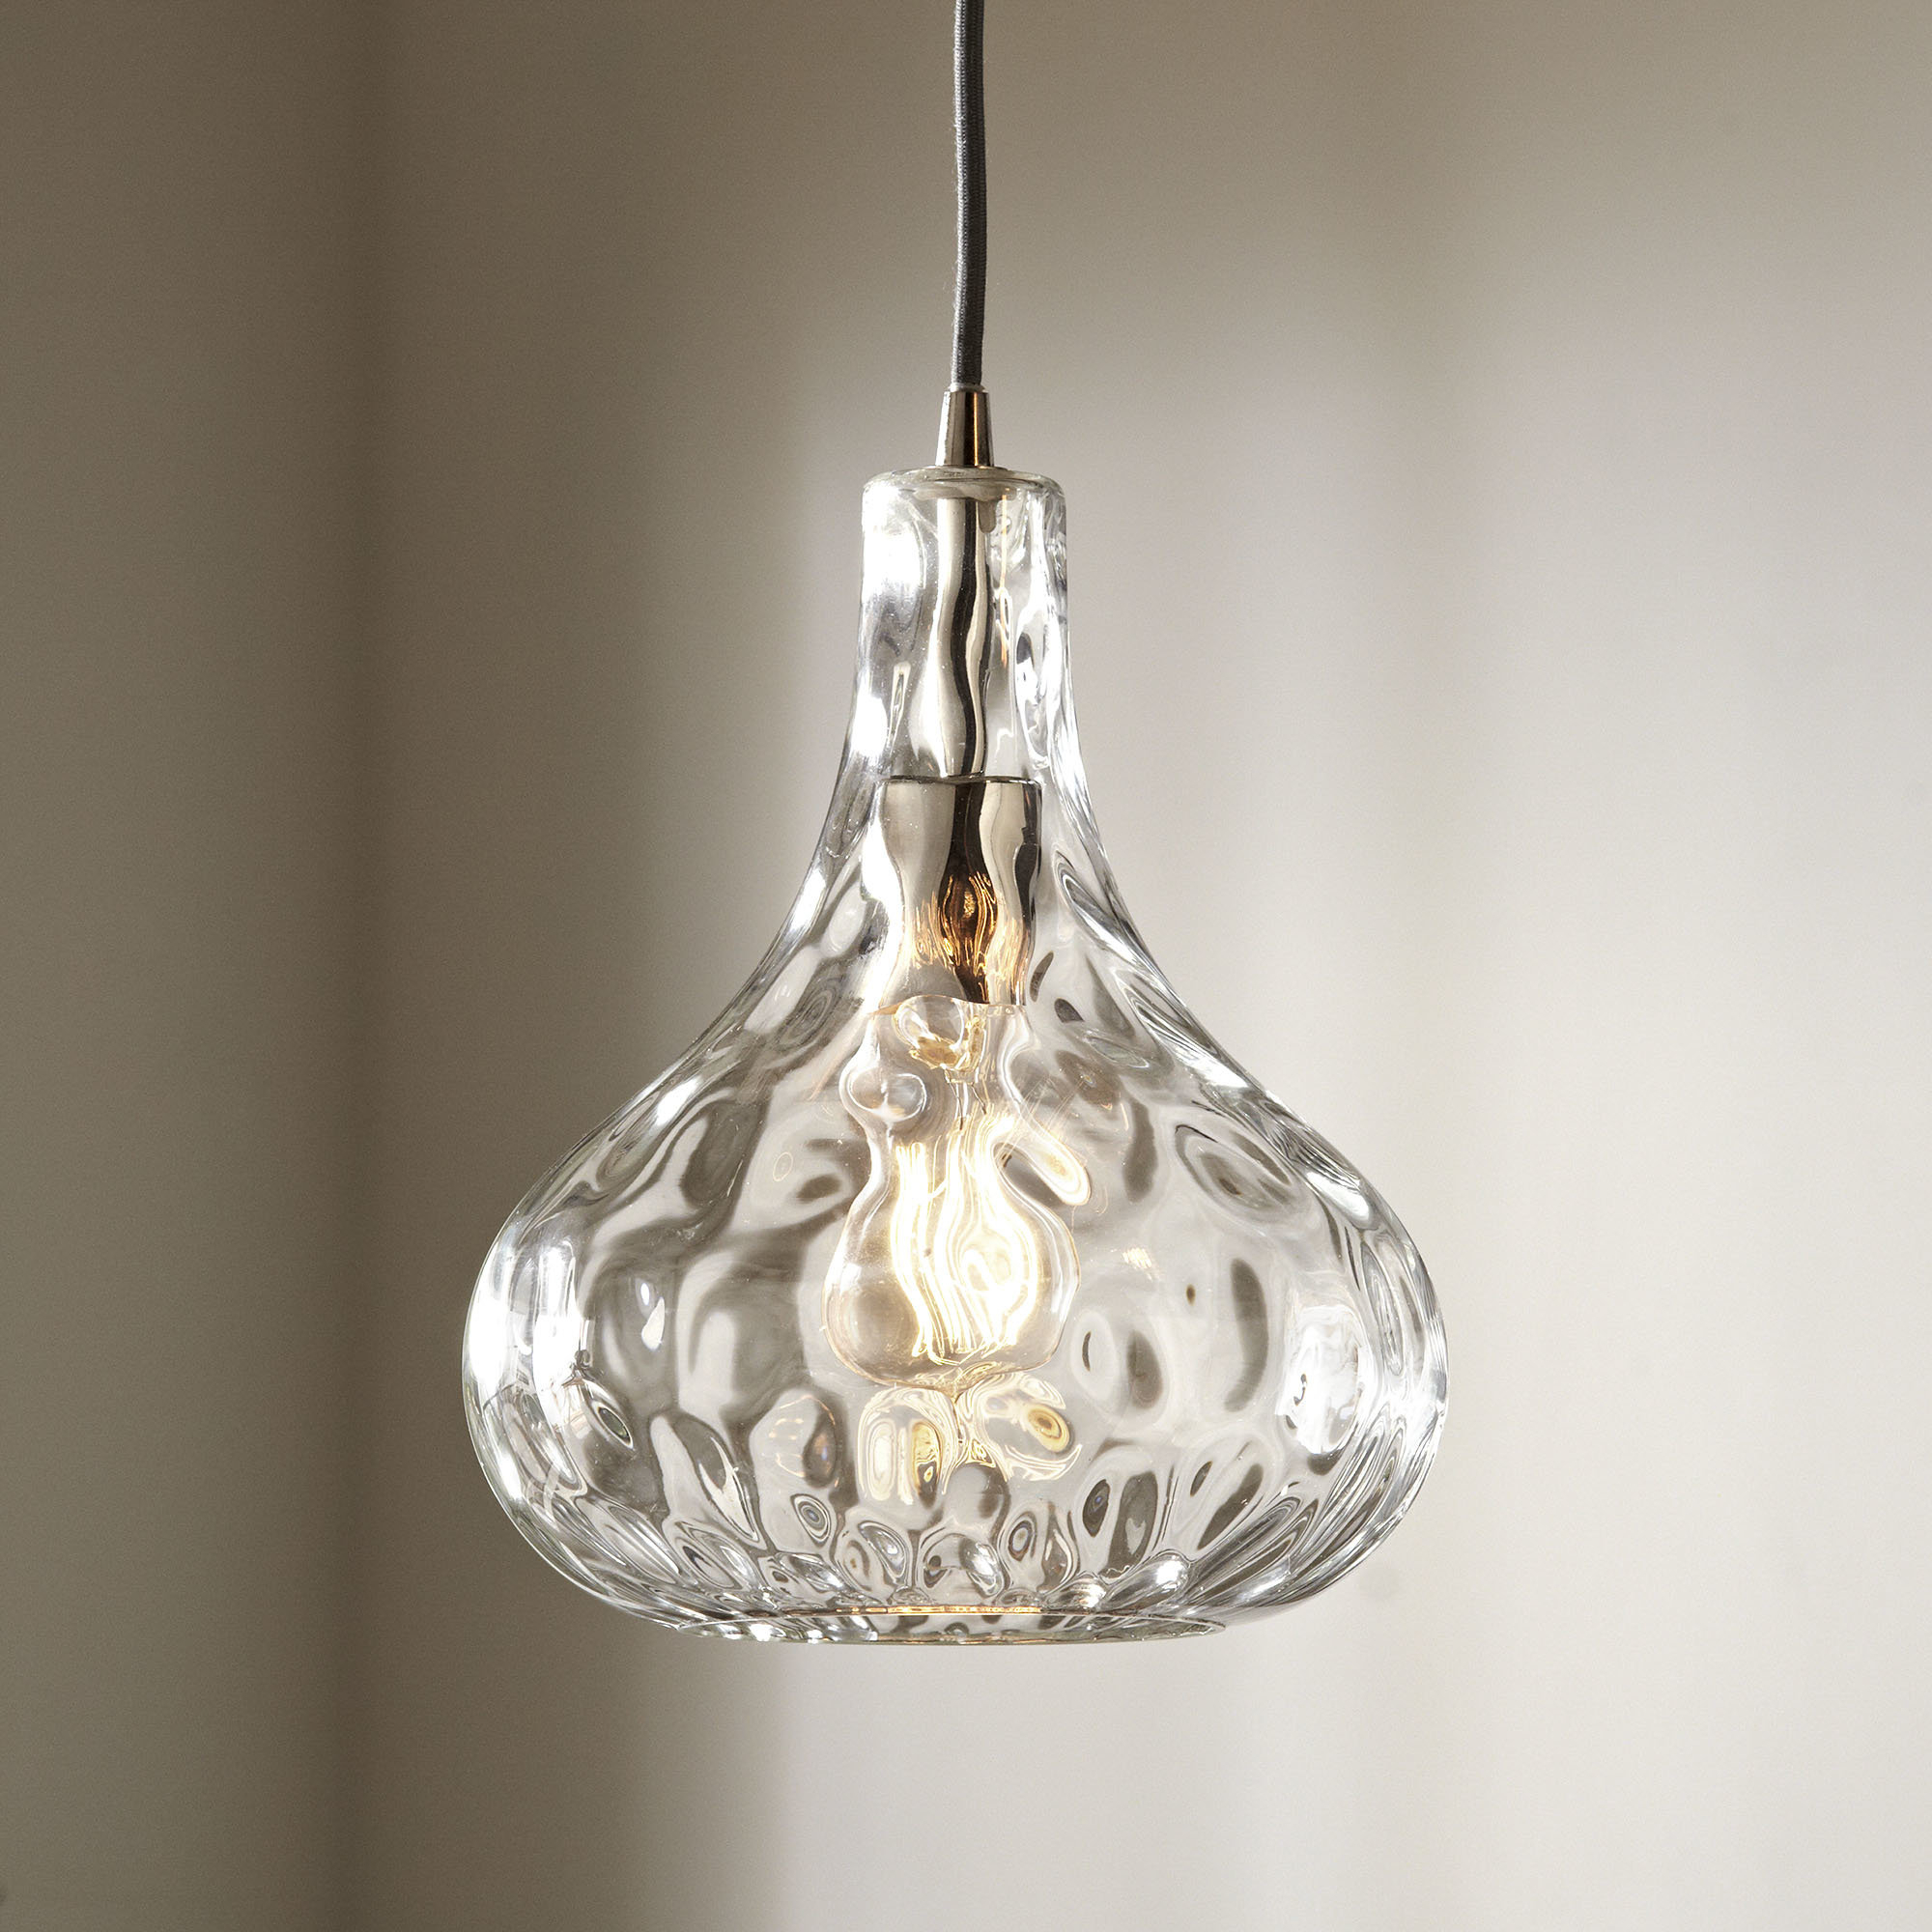 Birch Lane™ Heritage 1 Light Single Teardrop Pendant With Regard To Neal 1 Light Single Teardrop Pendants (View 13 of 30)